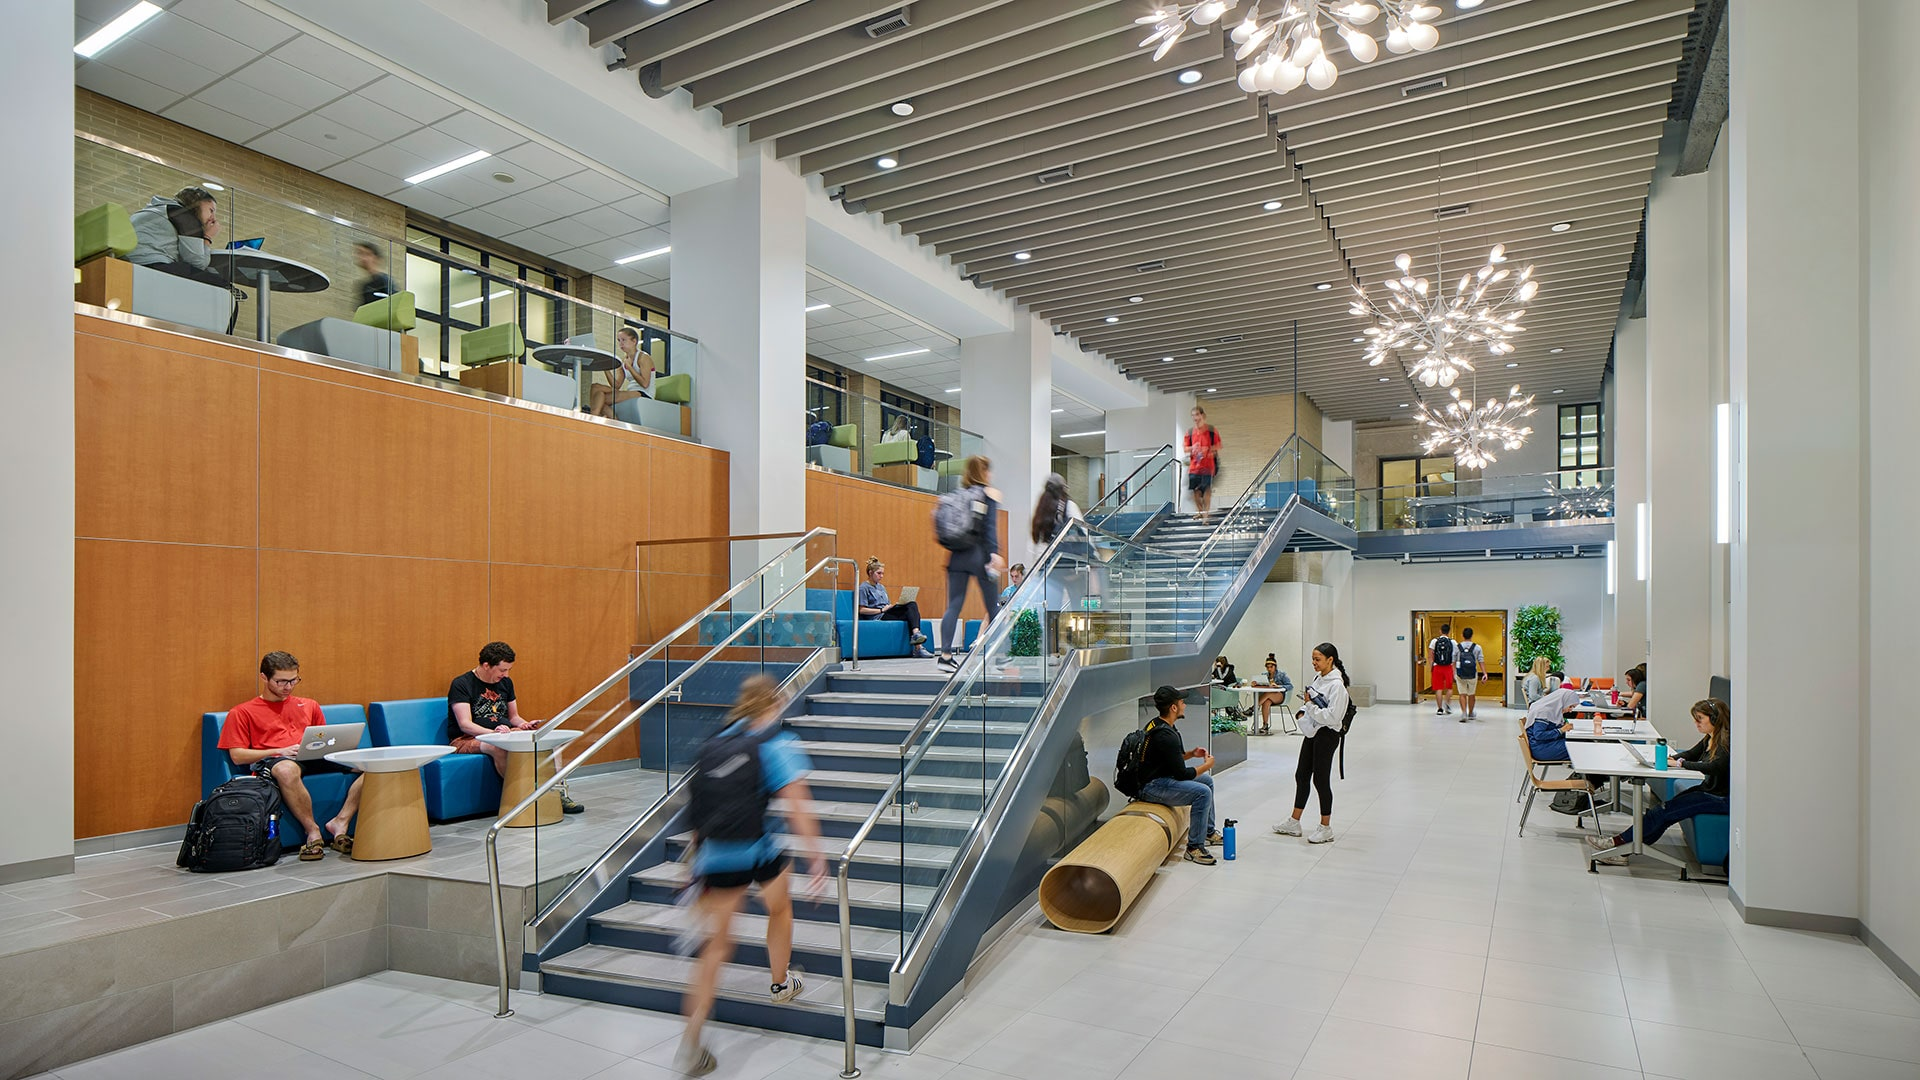 Pattee Library Knowledge Commons (Phases 7-9) at Penn State